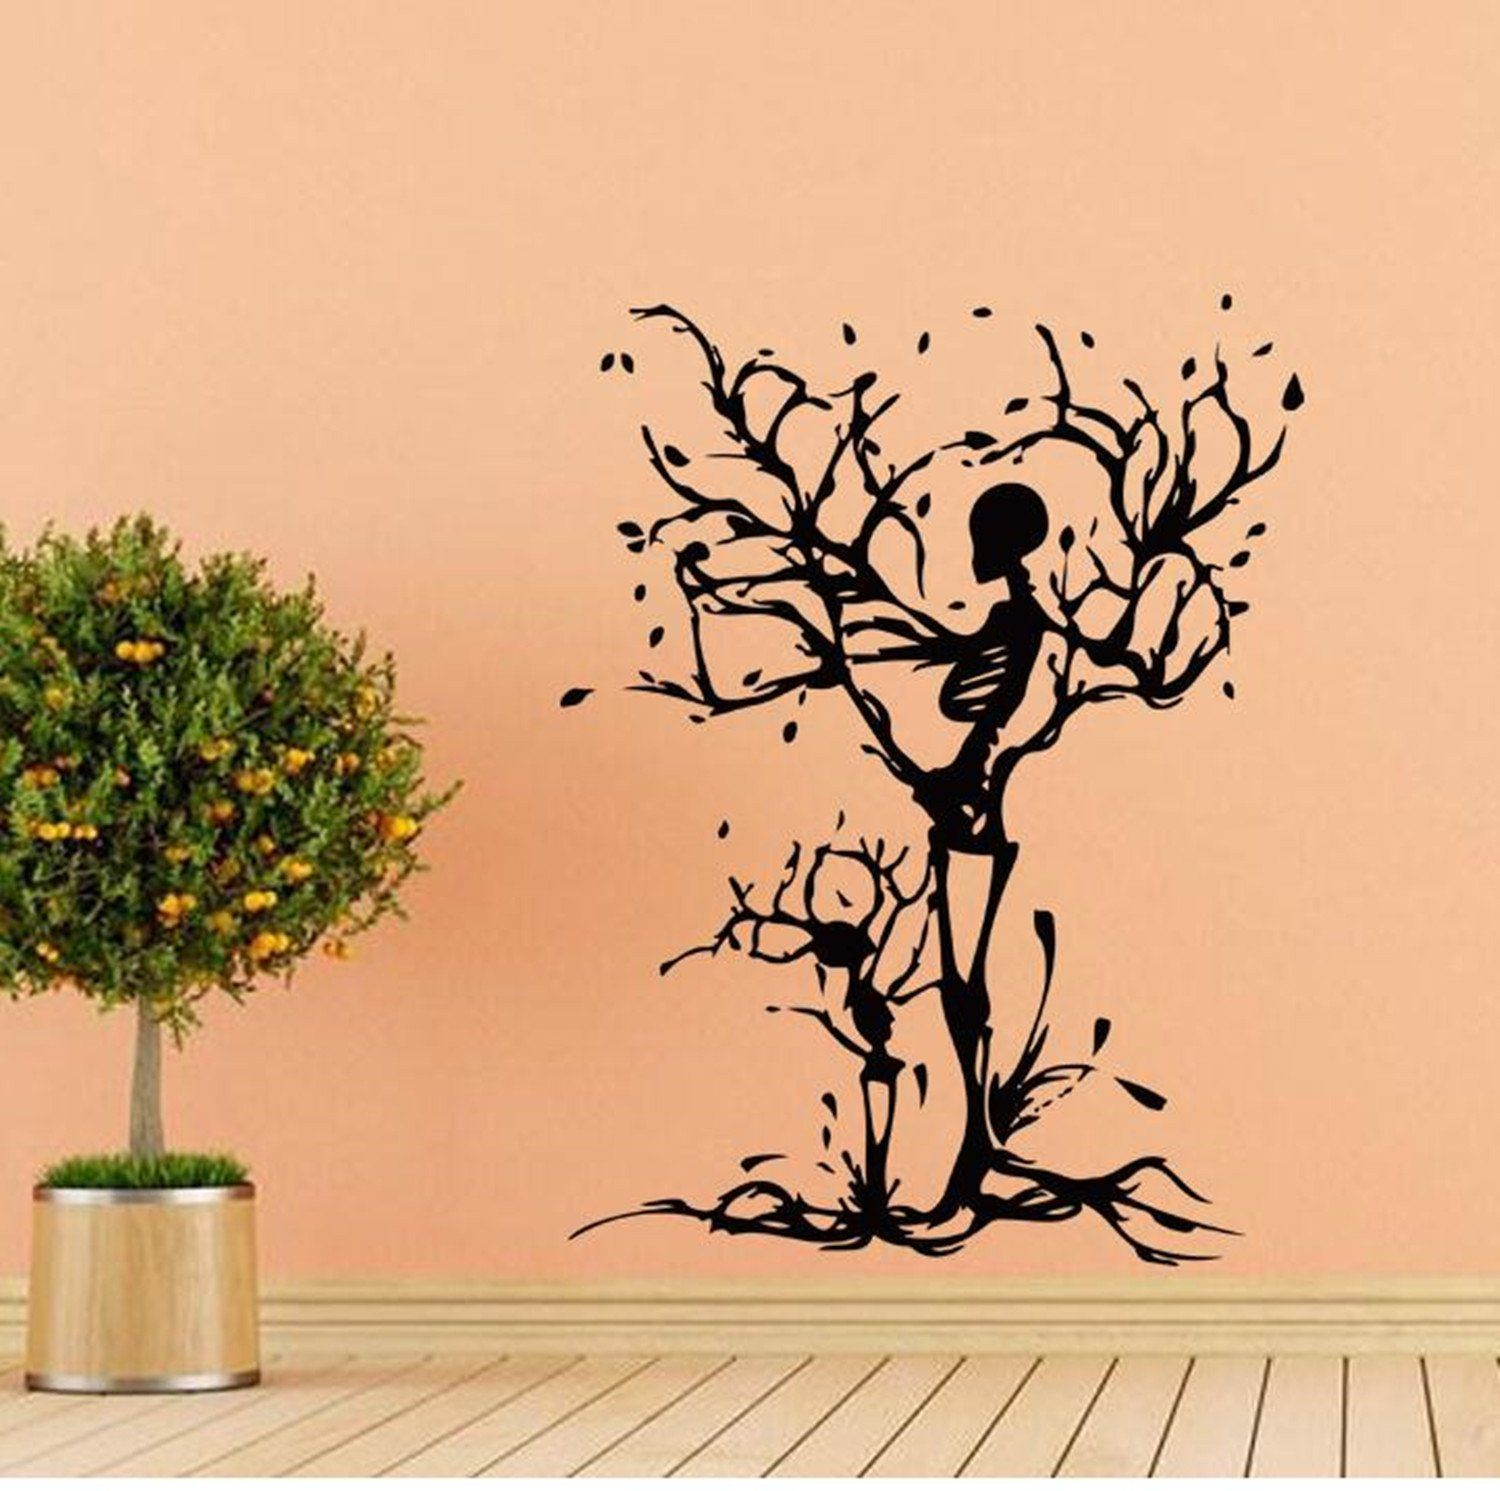 highfs halloween skeleton tree wall decals removable wall highfs halloween skeleton tree wall decals removable wall decorative painting supplies and wall treatments stickers for